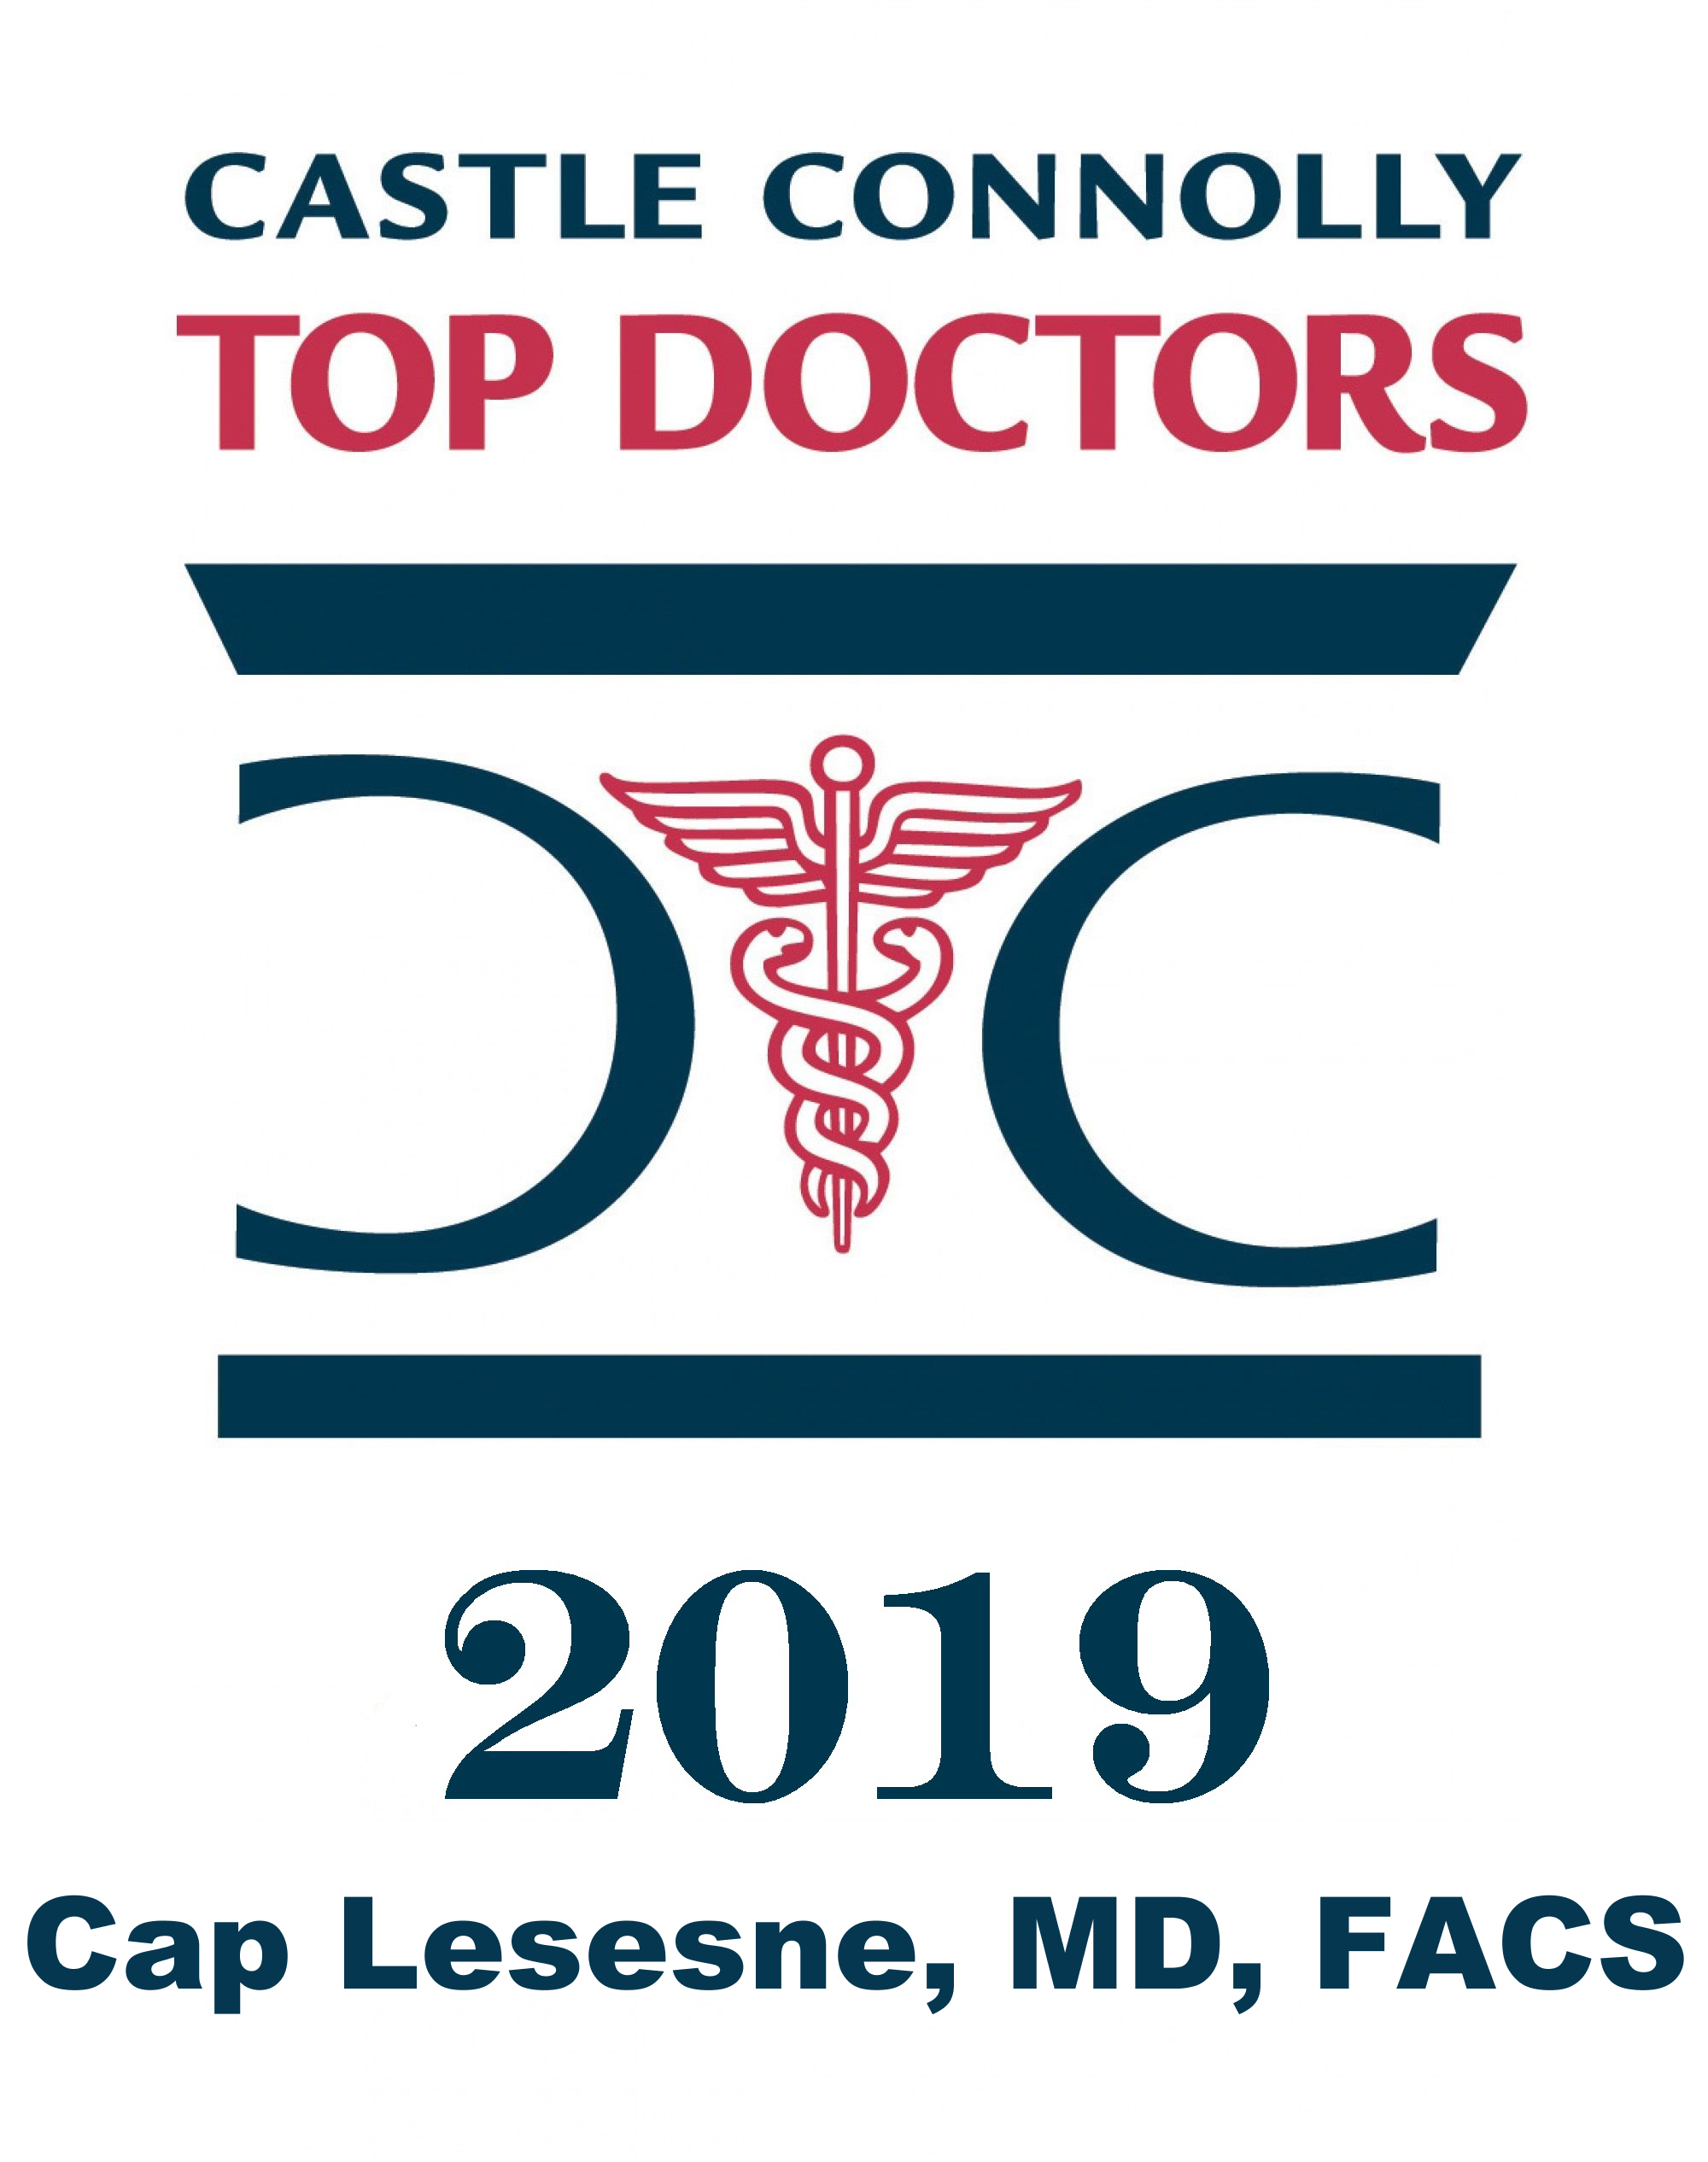 CASTLE CONNOLLYTOP DOCTOR - DR. LESESNE HAS BEEN NAMED AS ONE OF CASTLE CONNOLLY'S TOP DOCTORS FOR OVER 20 YEARS IN A ROW.